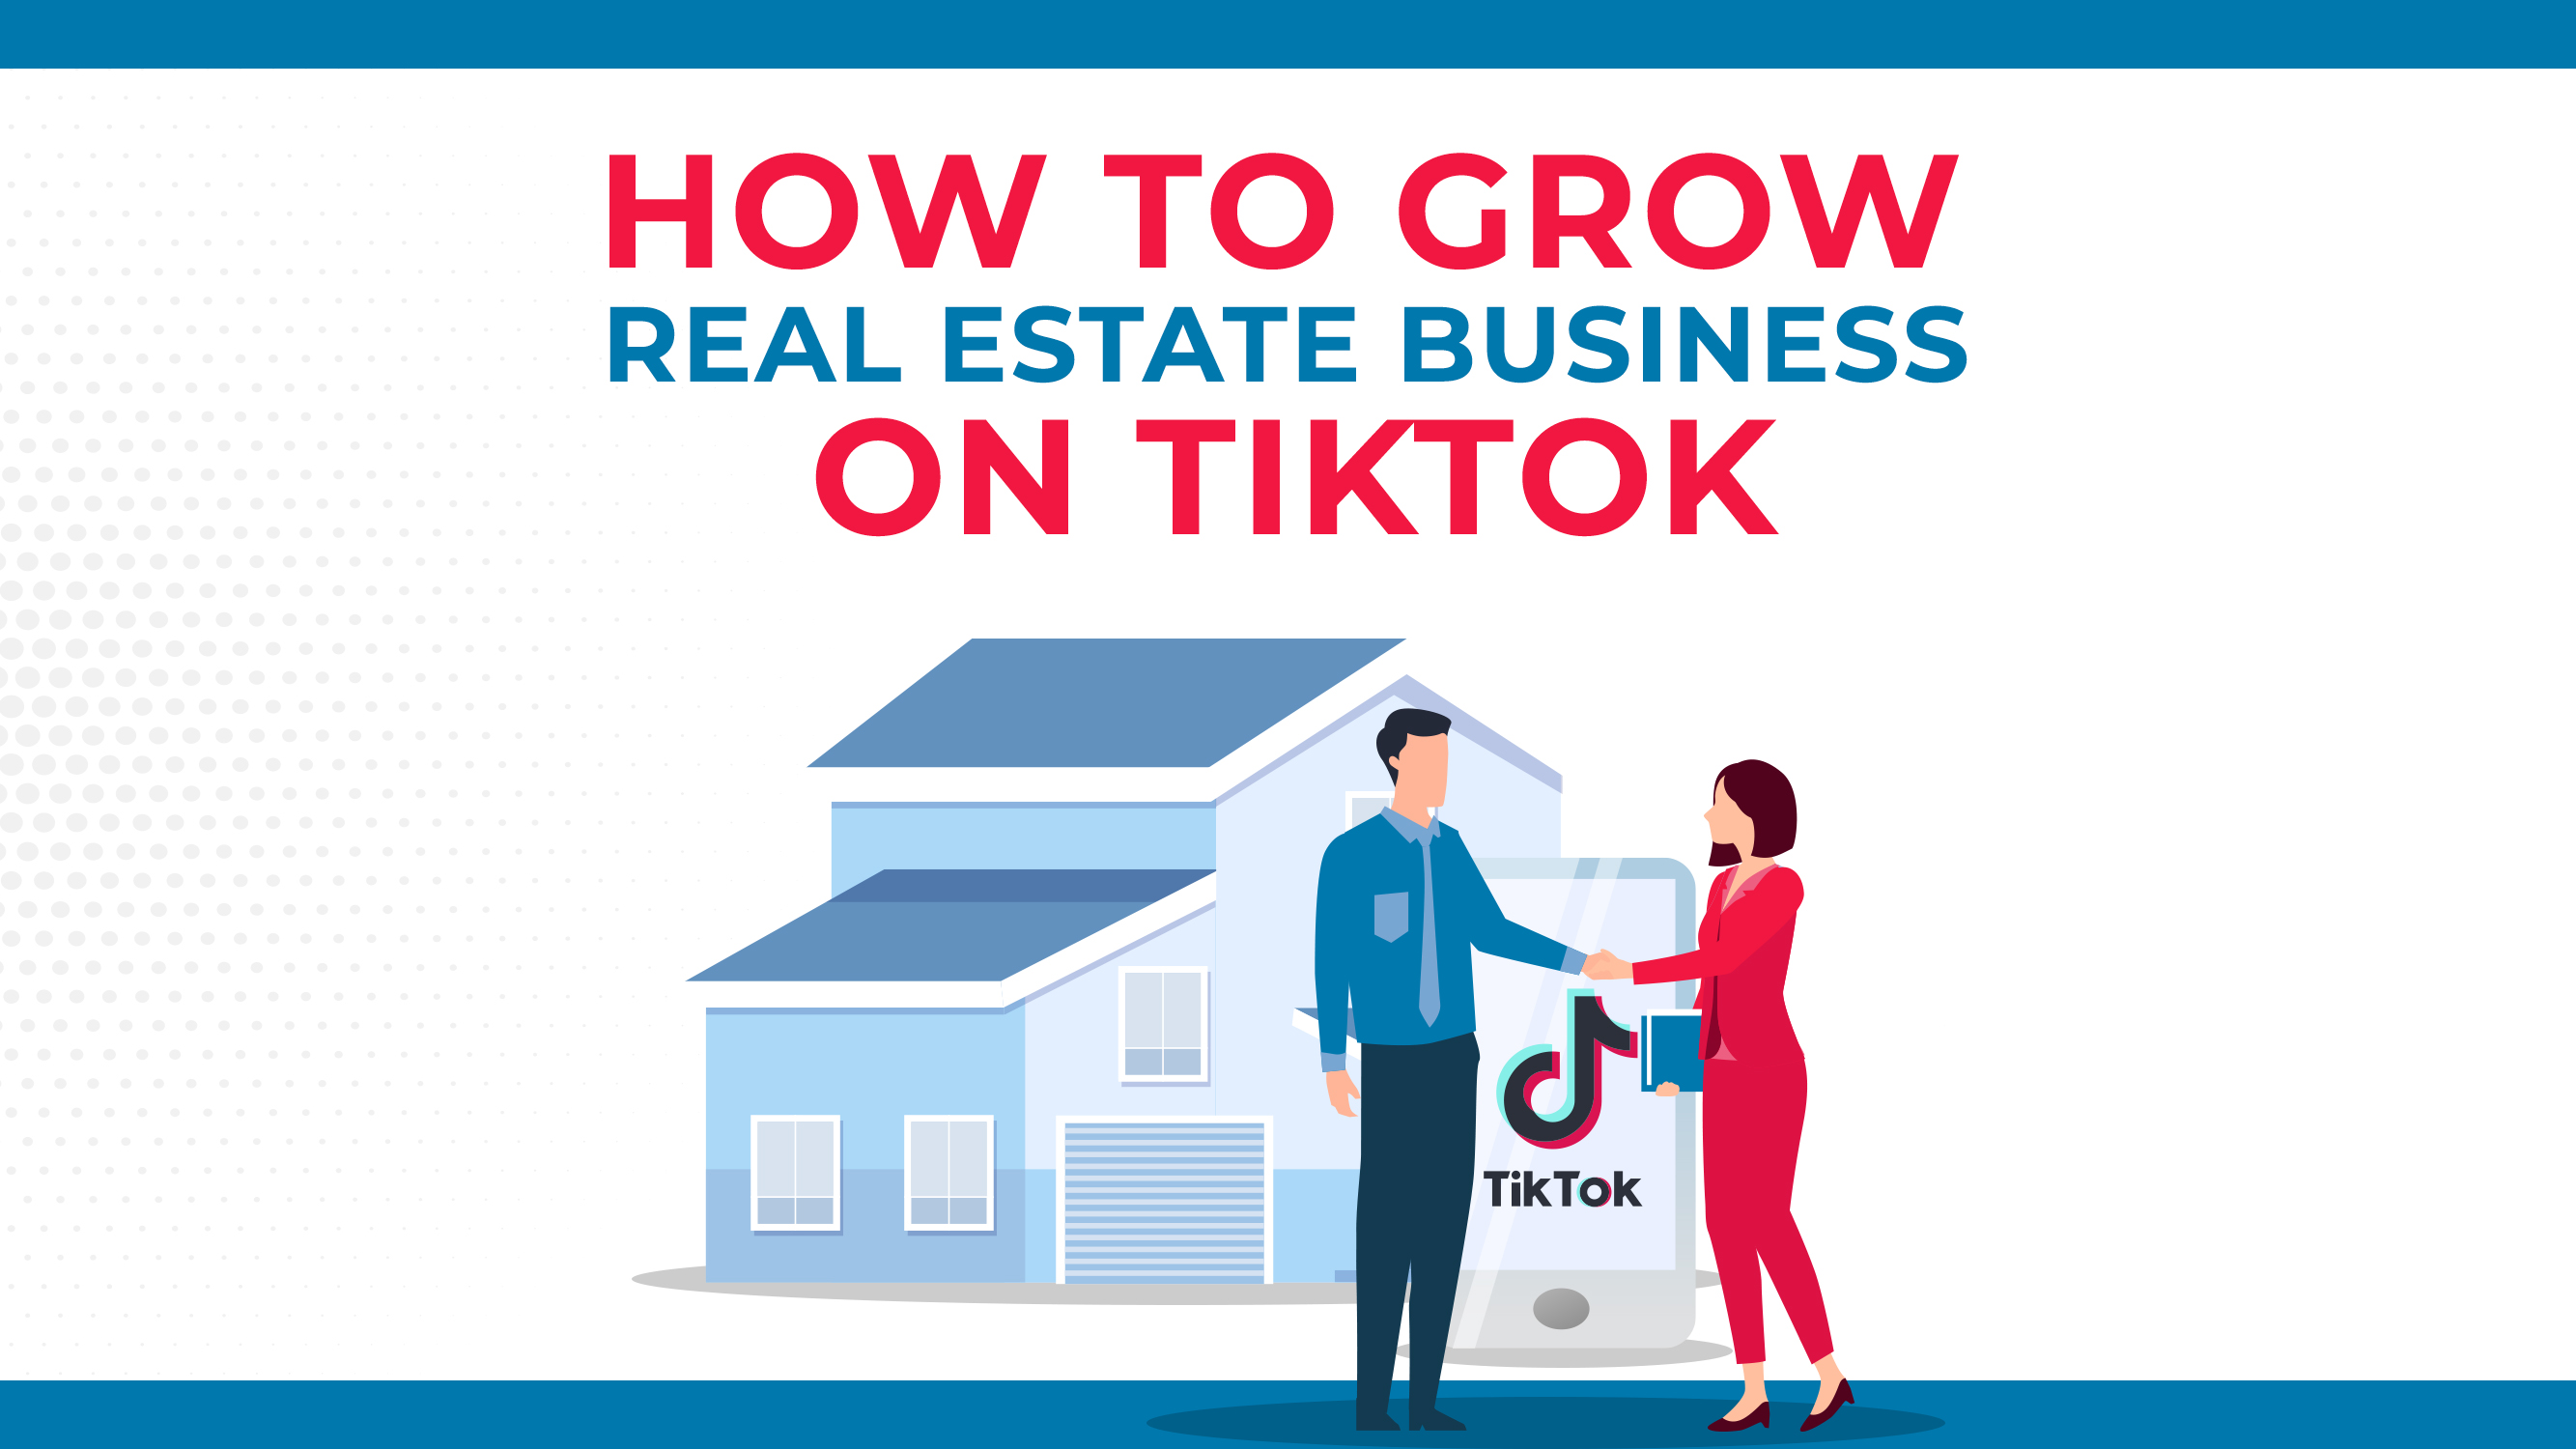 How To Grow Your Real Estate Business On TikTok